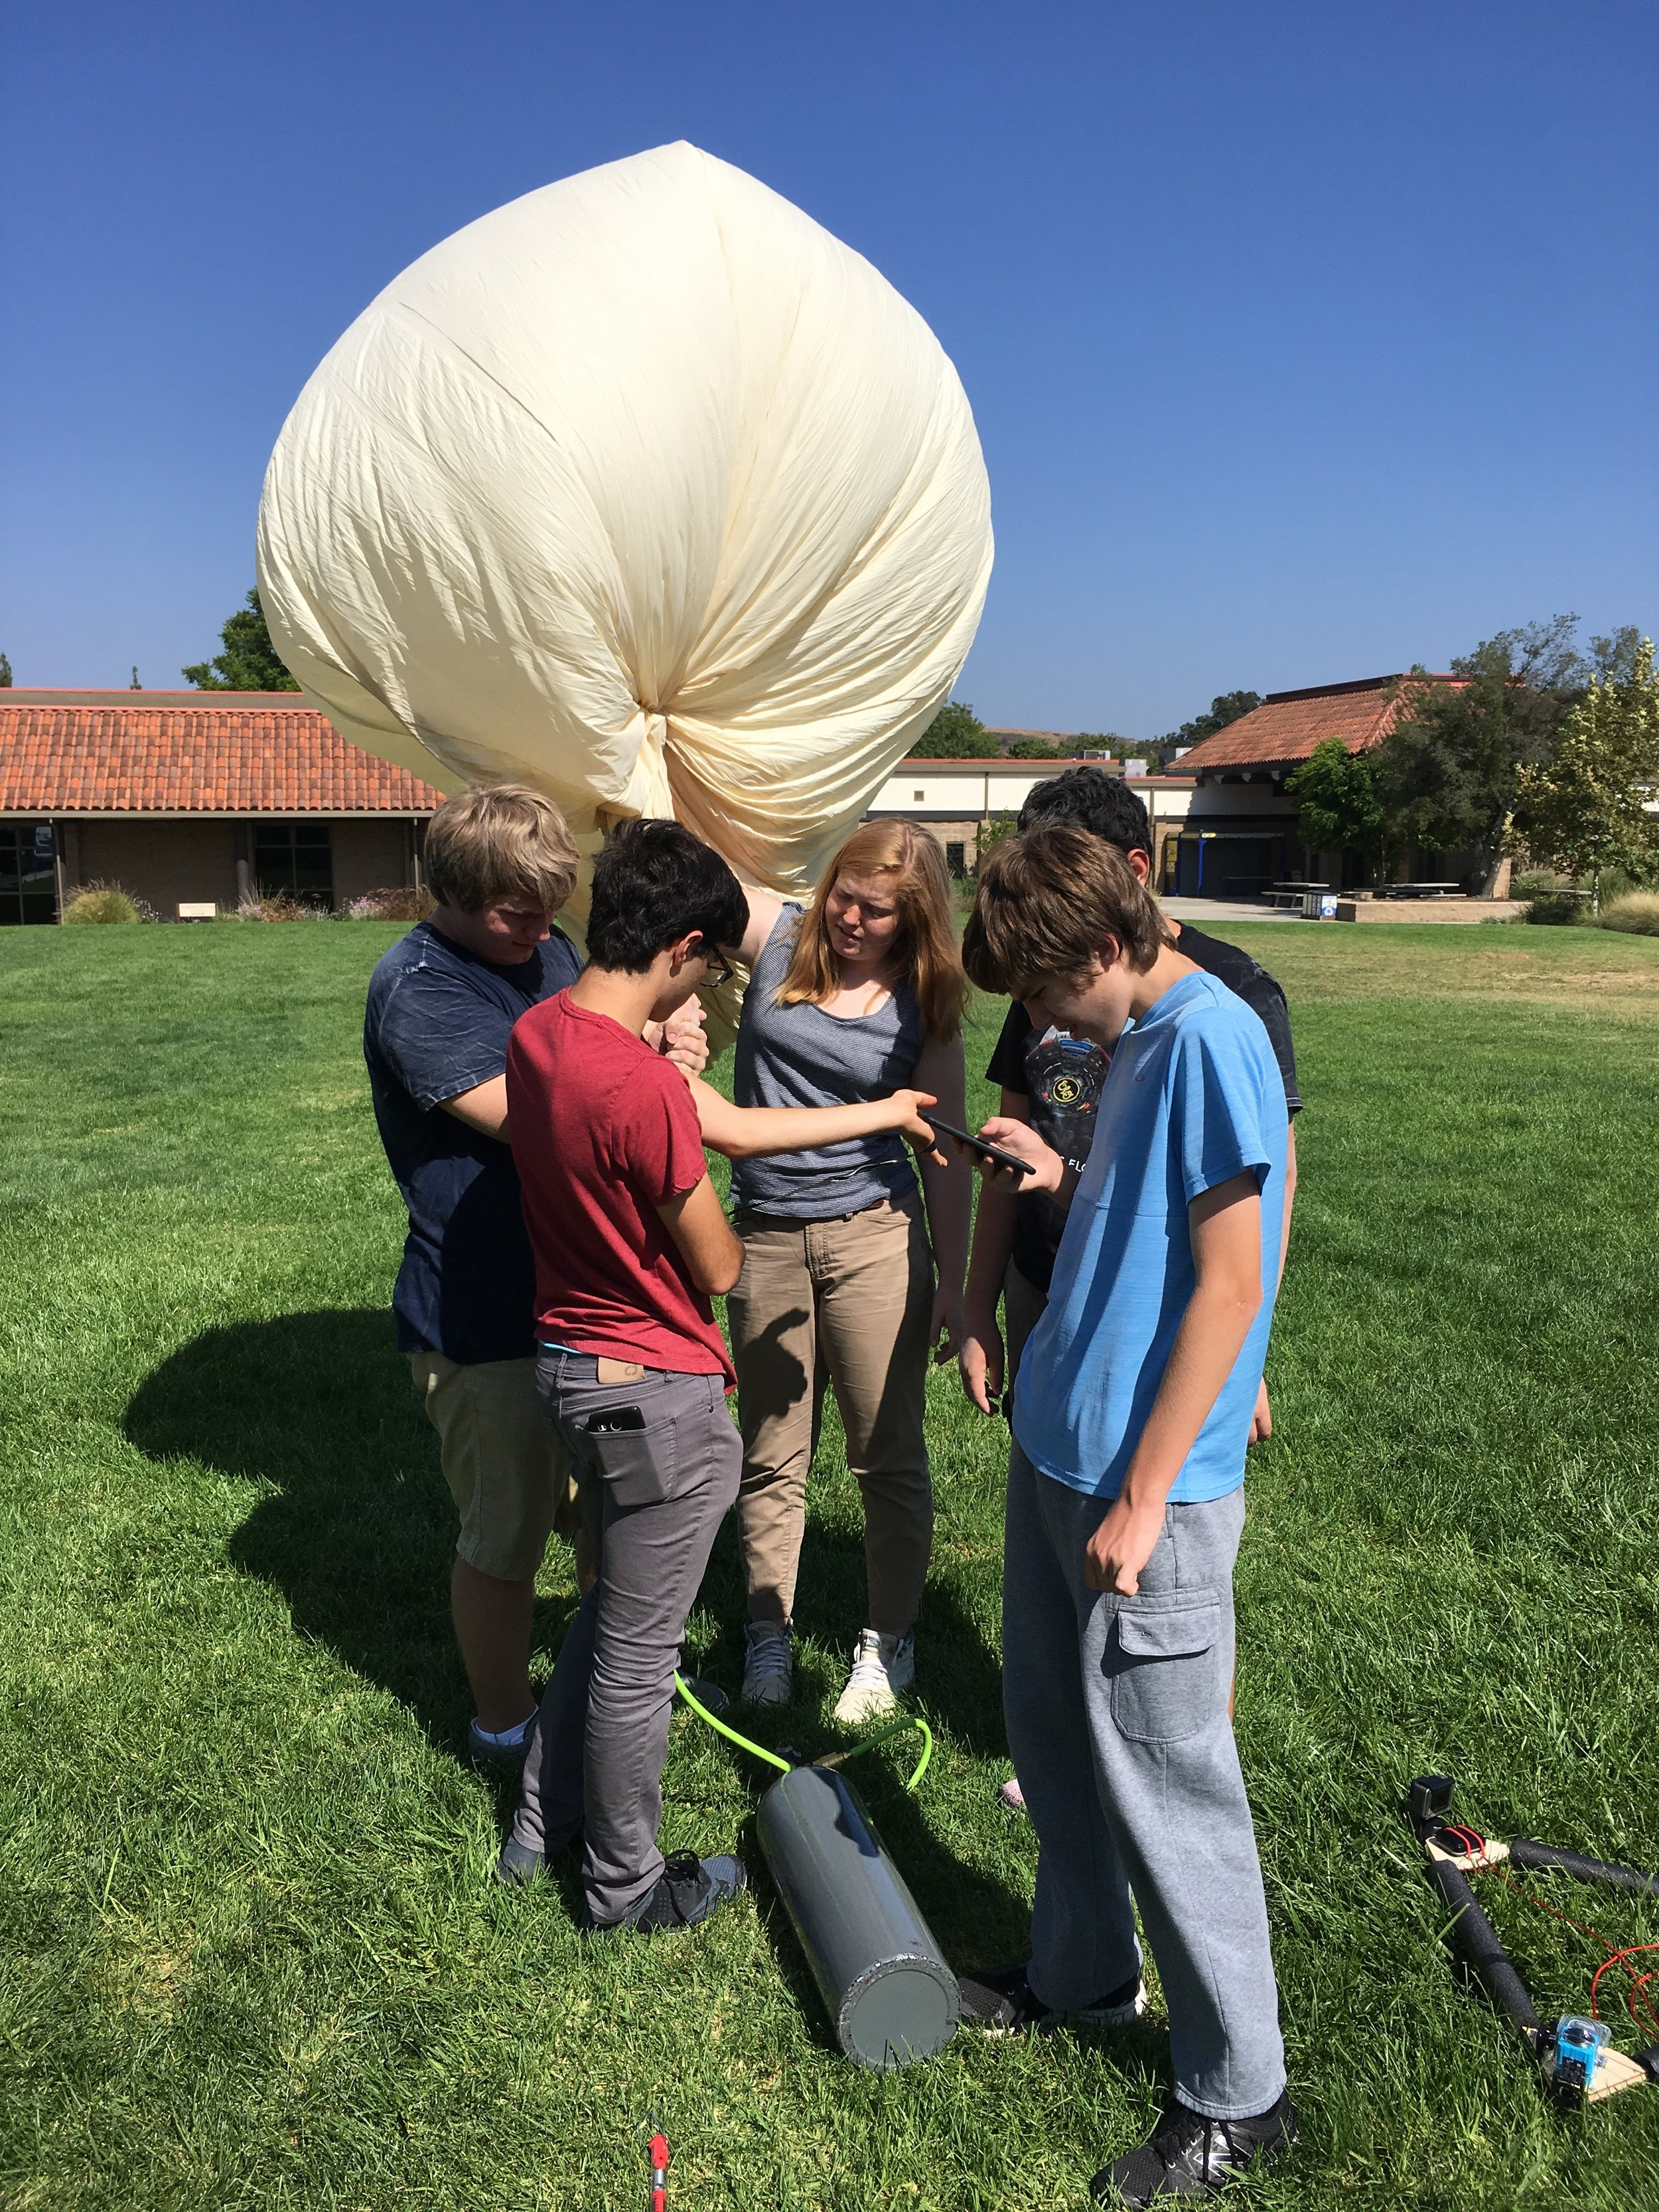 Preparing for our Launch - Before we could launch our balloon, we had to first construct our payload and learn how to operate its various electronic components. We also had to learn the procedures behind weather balloon operation. For example, we had to file a